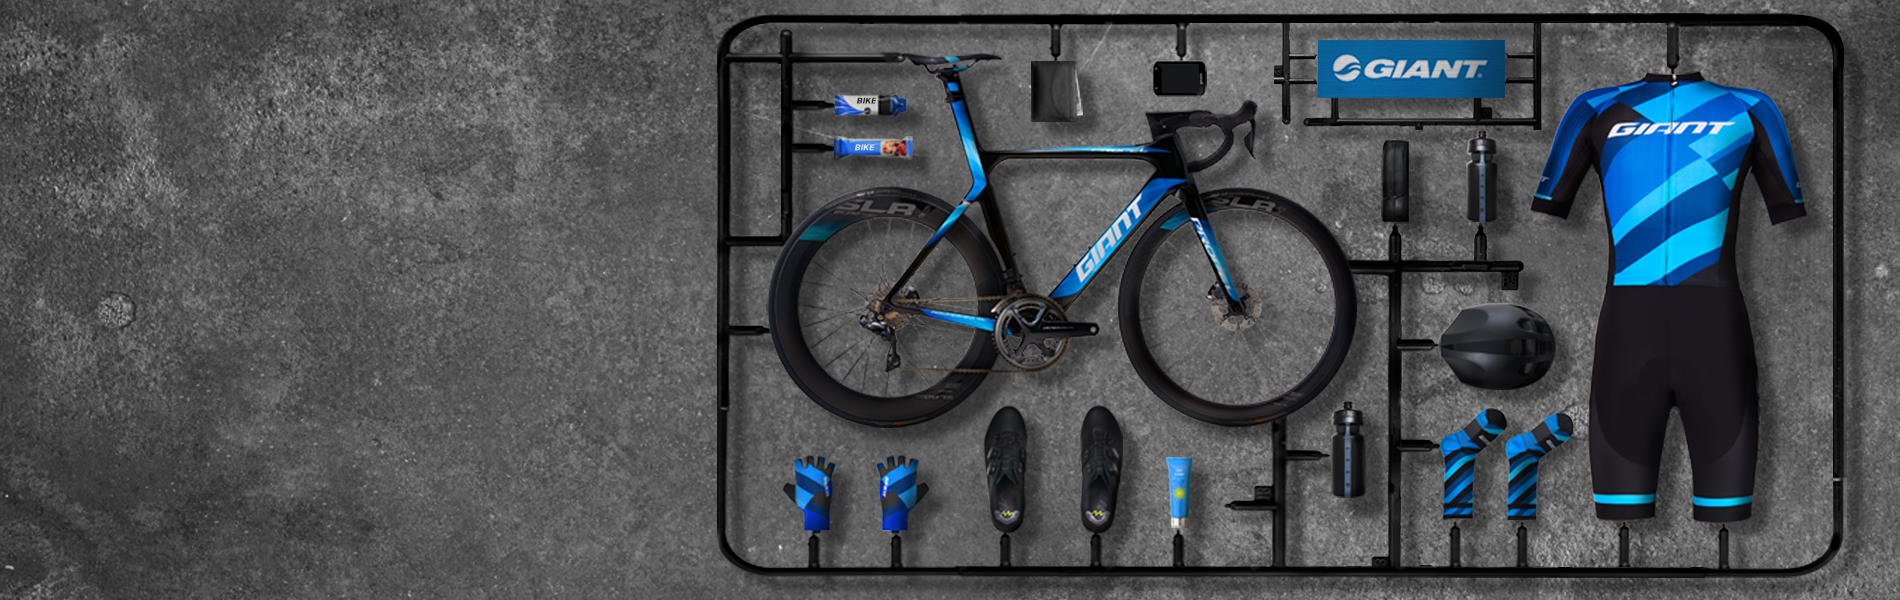 Aero Road Bike Gear Guide Giant Bicycles Official Site